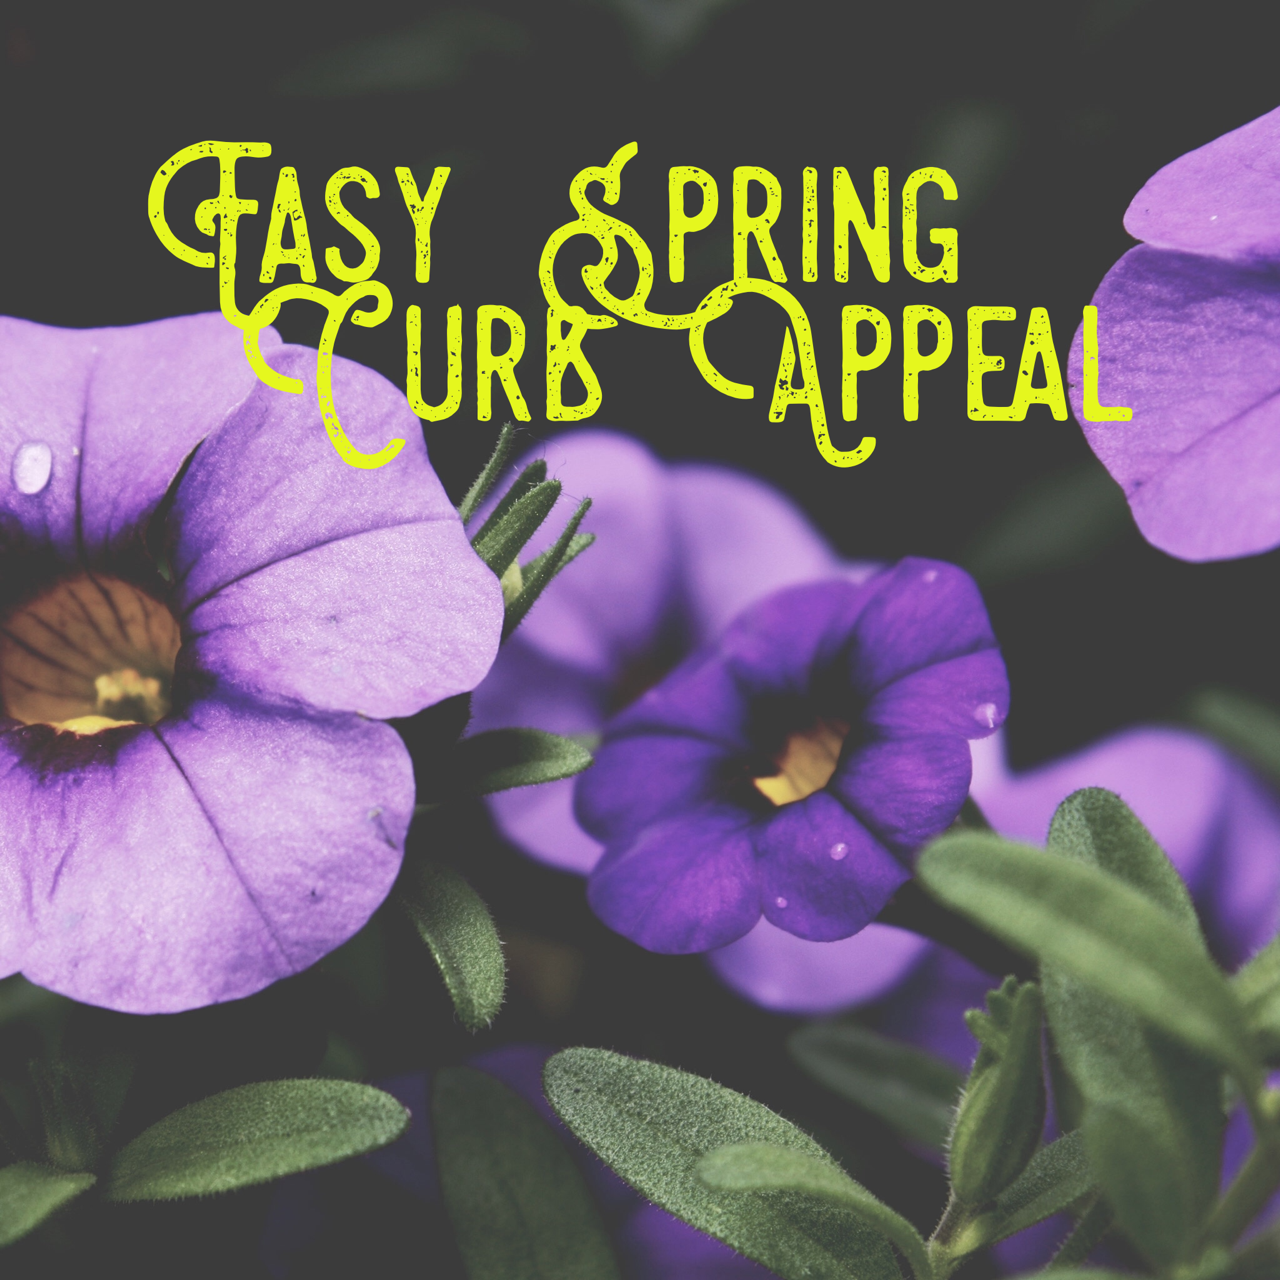 Easy Spring Curb Appeal